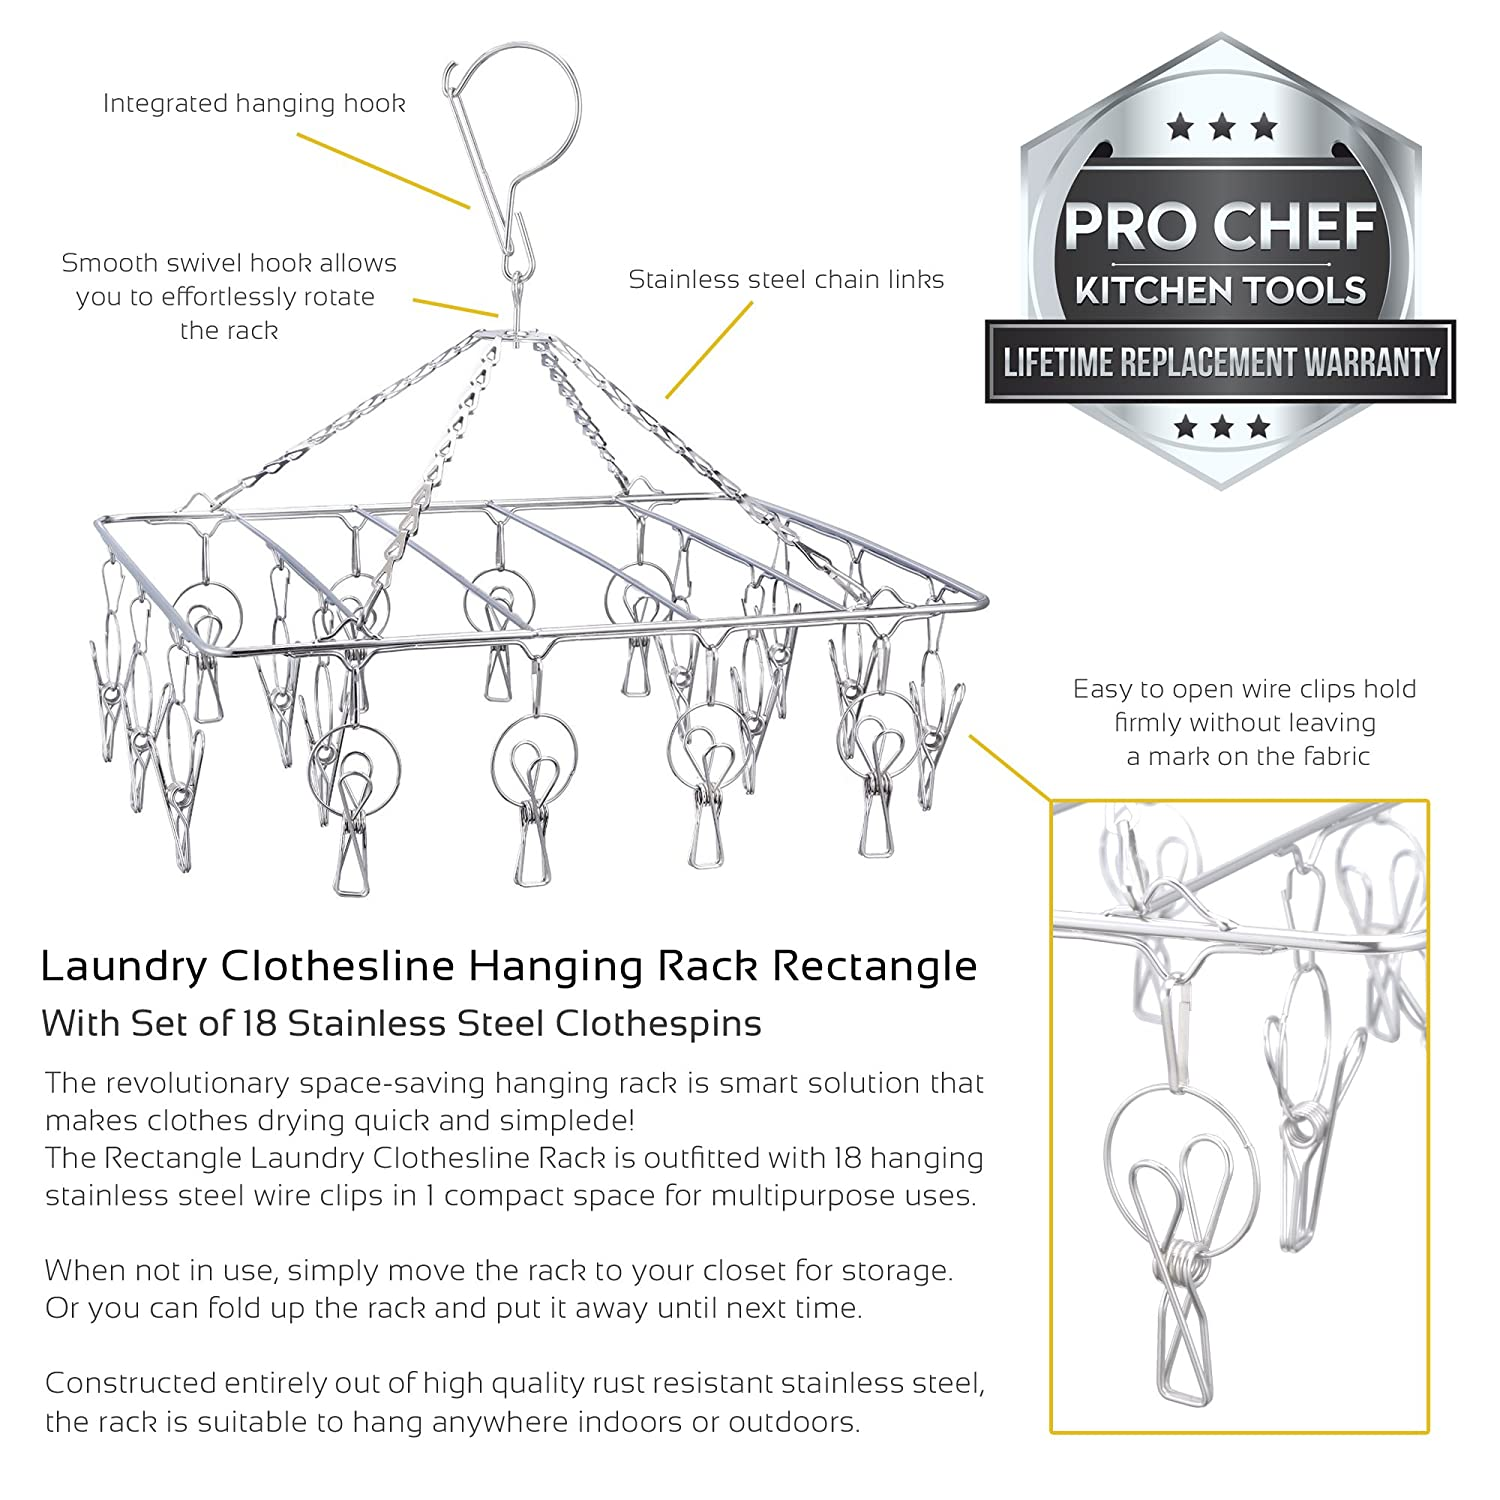 Pro Chef Kitchen Tools Clothes Drying Racks For Laundry With A Dryer Schematic Wiring 4 Wires Rectangle Clothing Rack Portable Clothesline Includes 18 Metal Clothespins Clips Set